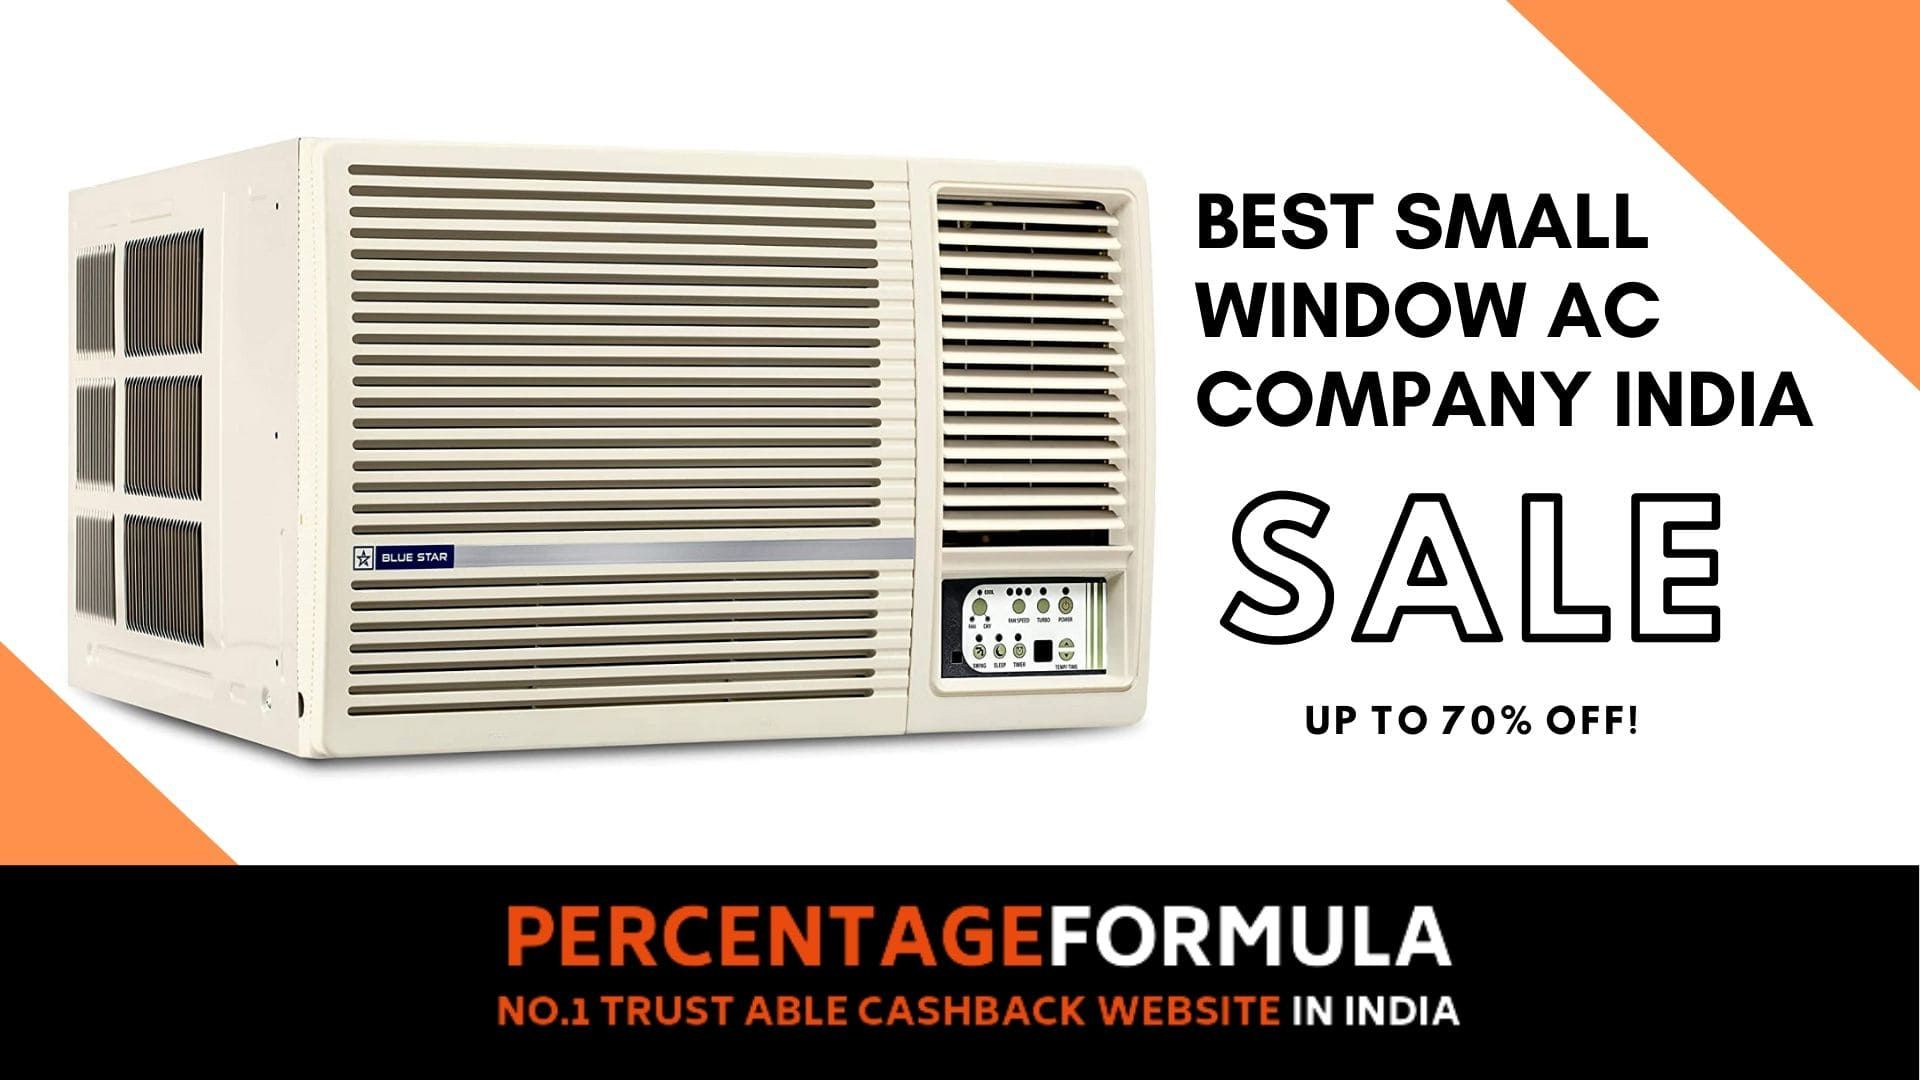 BEST SMALL WINDOW AC COMPANY INDIA 2020 Top 10 Companies